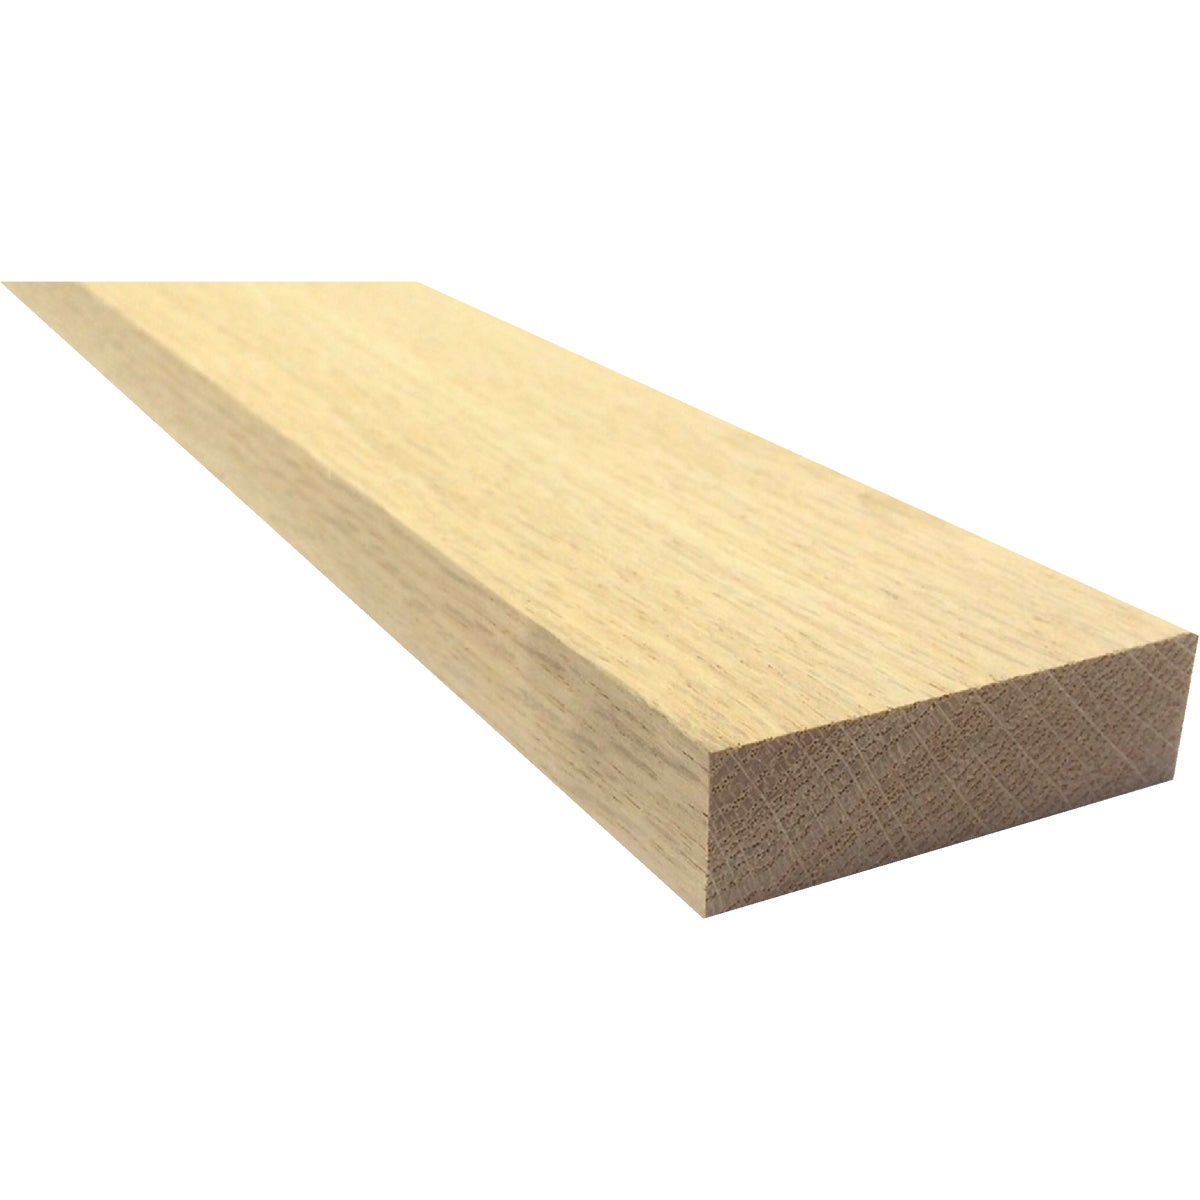 "1X3""X6' OAK BOARD - PB19530 by Waddell Mfg Company"